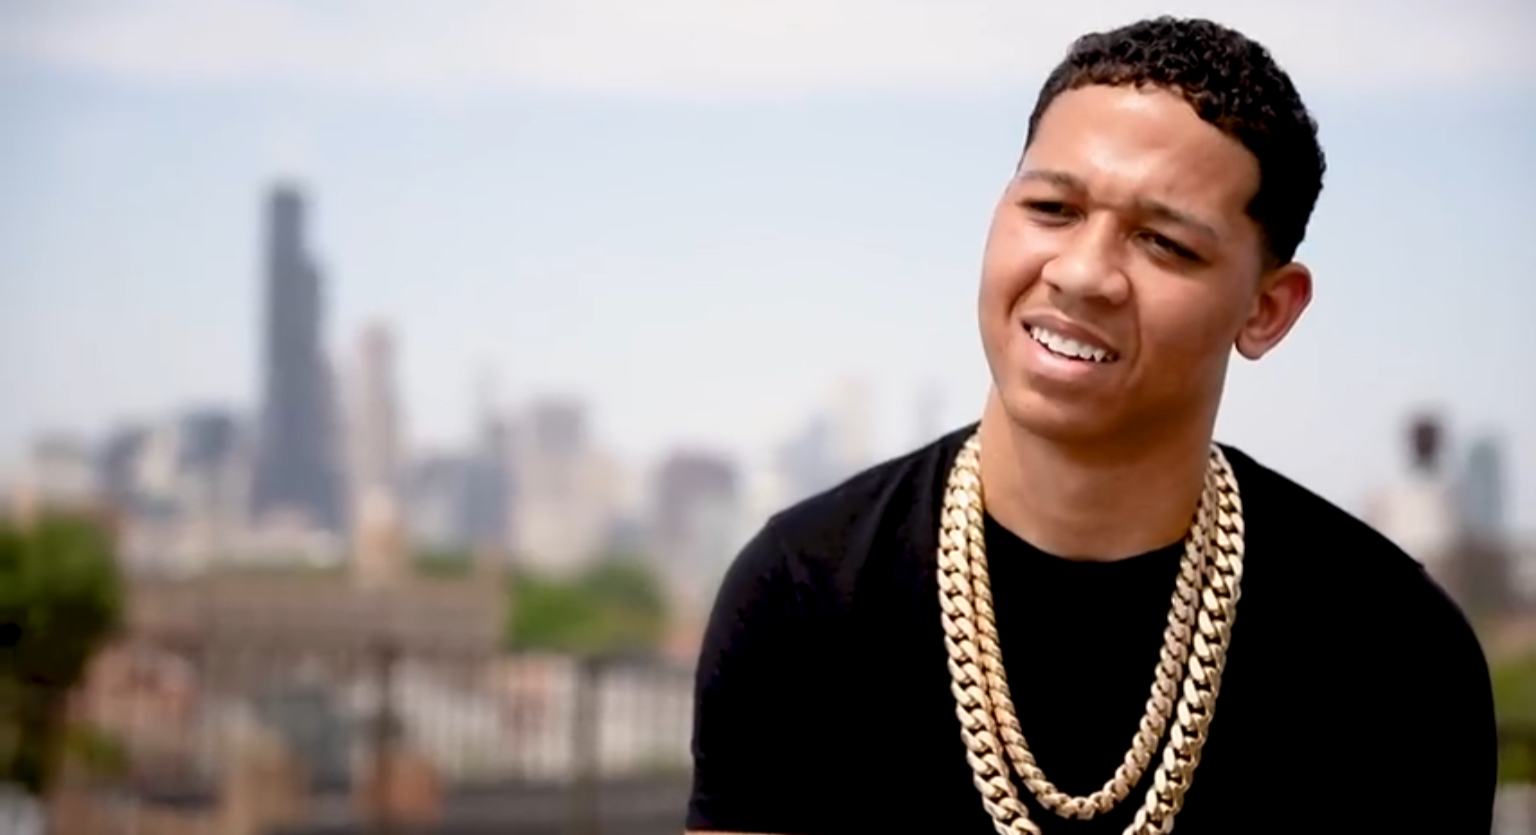 Lil Bibby explains transitioning from an Artist to a Record label executive